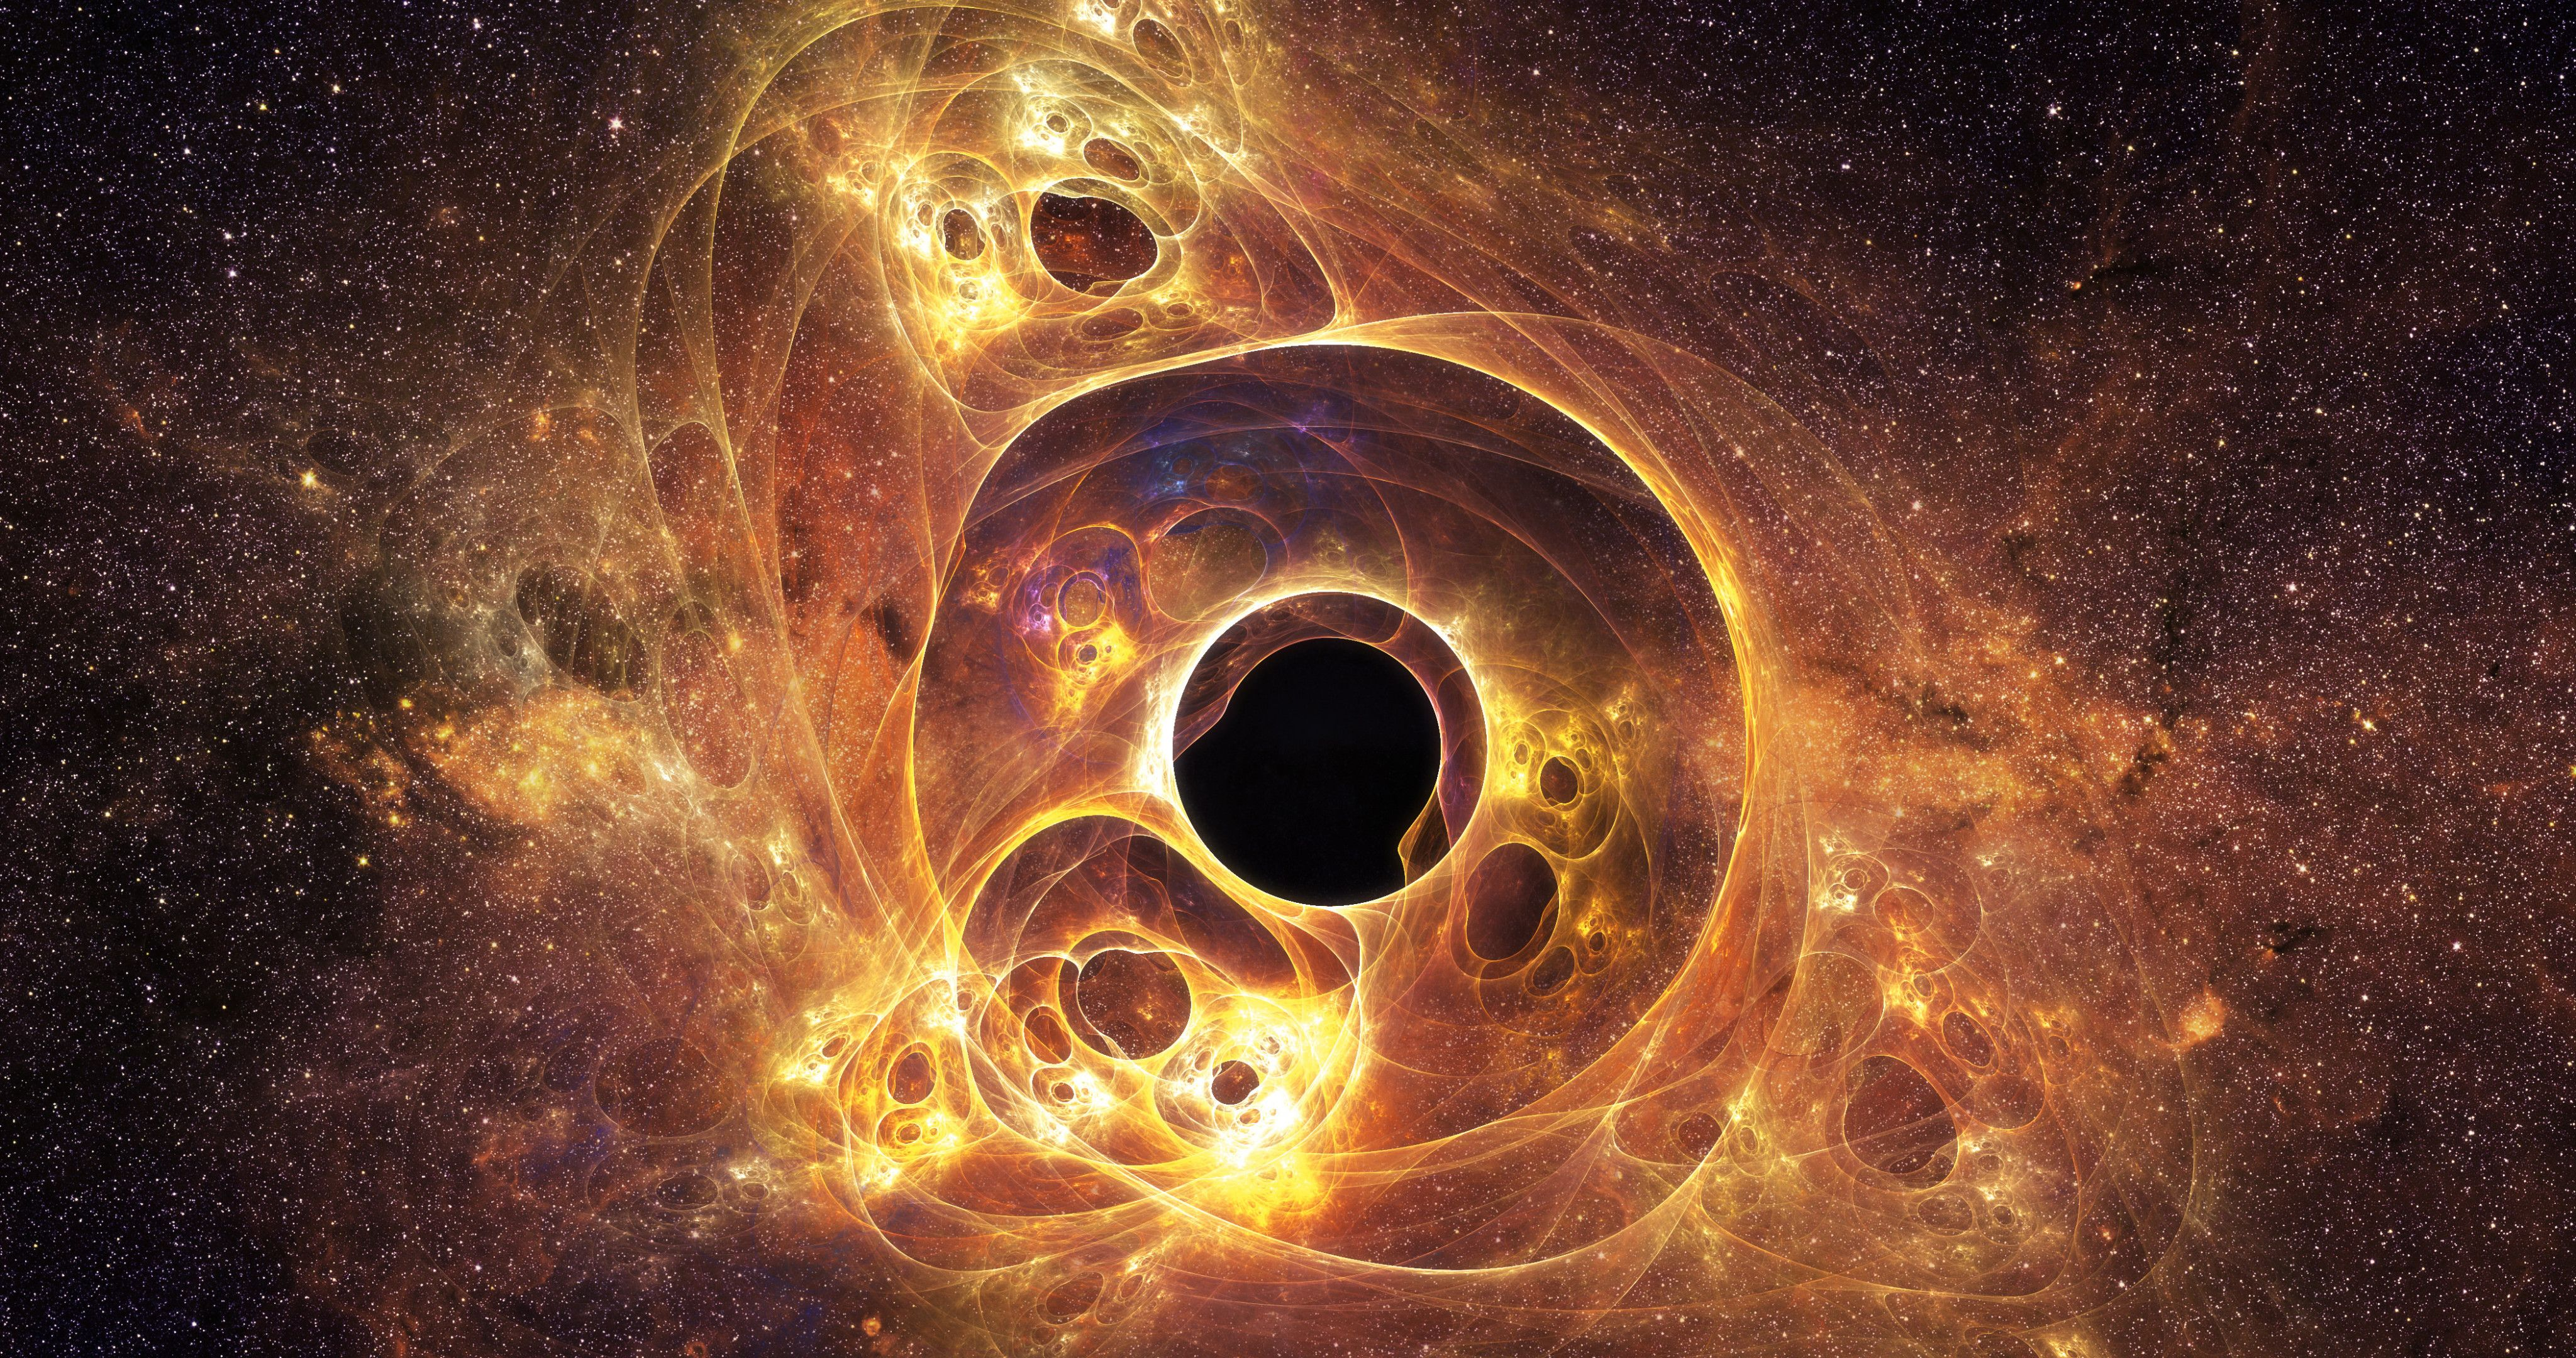 4k Black Hole Wallpapers Top Free 4k Black Hole